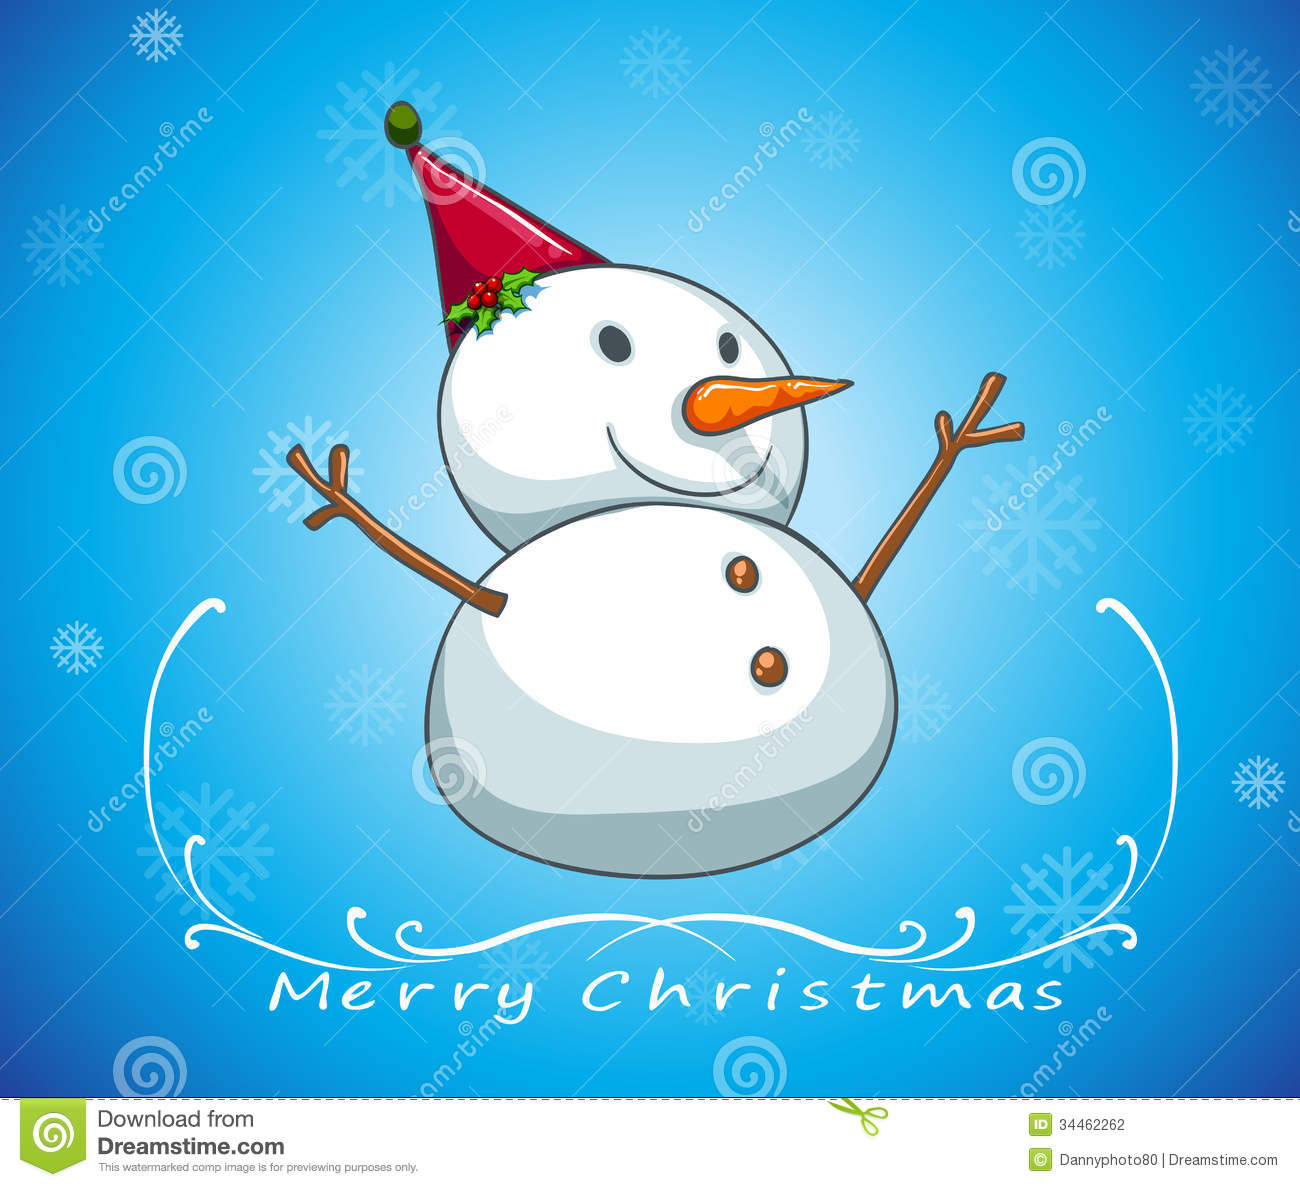 a blue christmas card template with a snowman stock